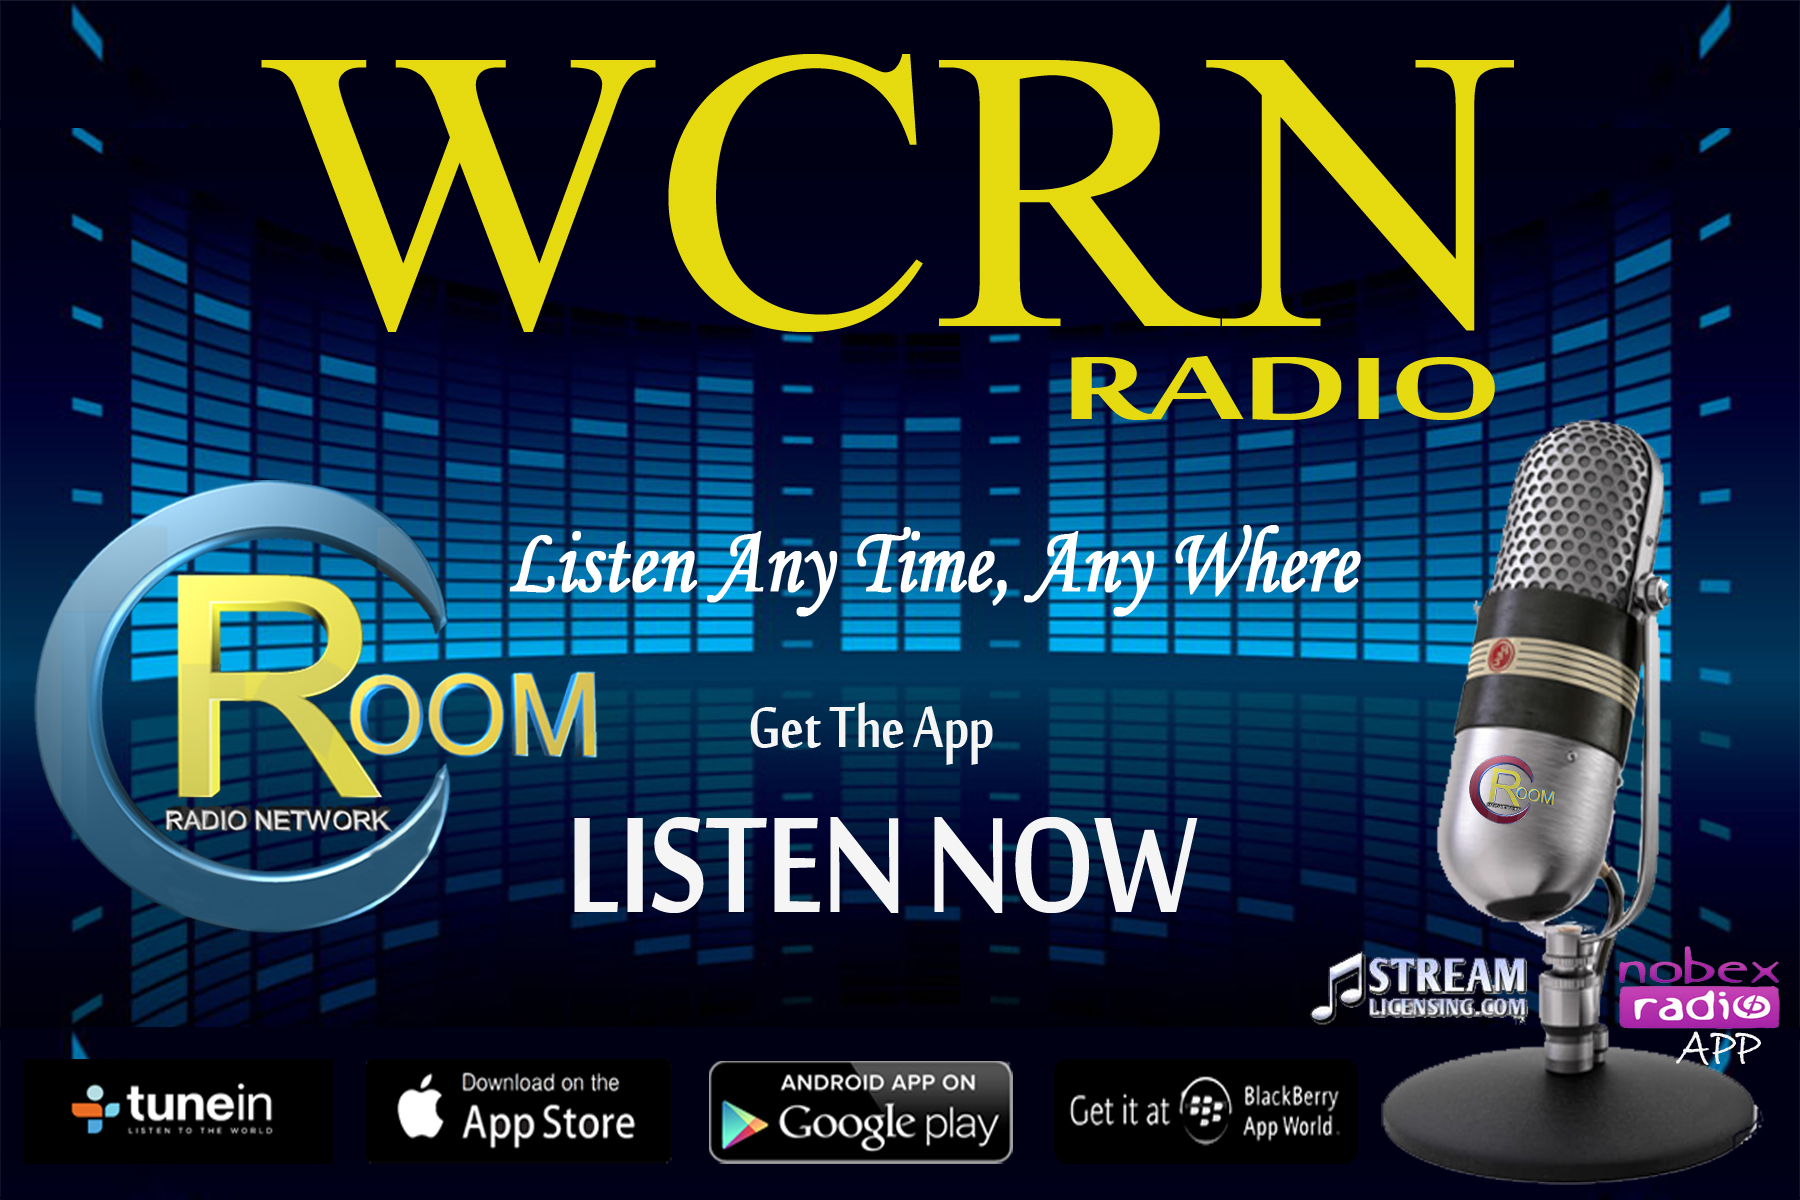 C-ROOM RADIO NETWORK